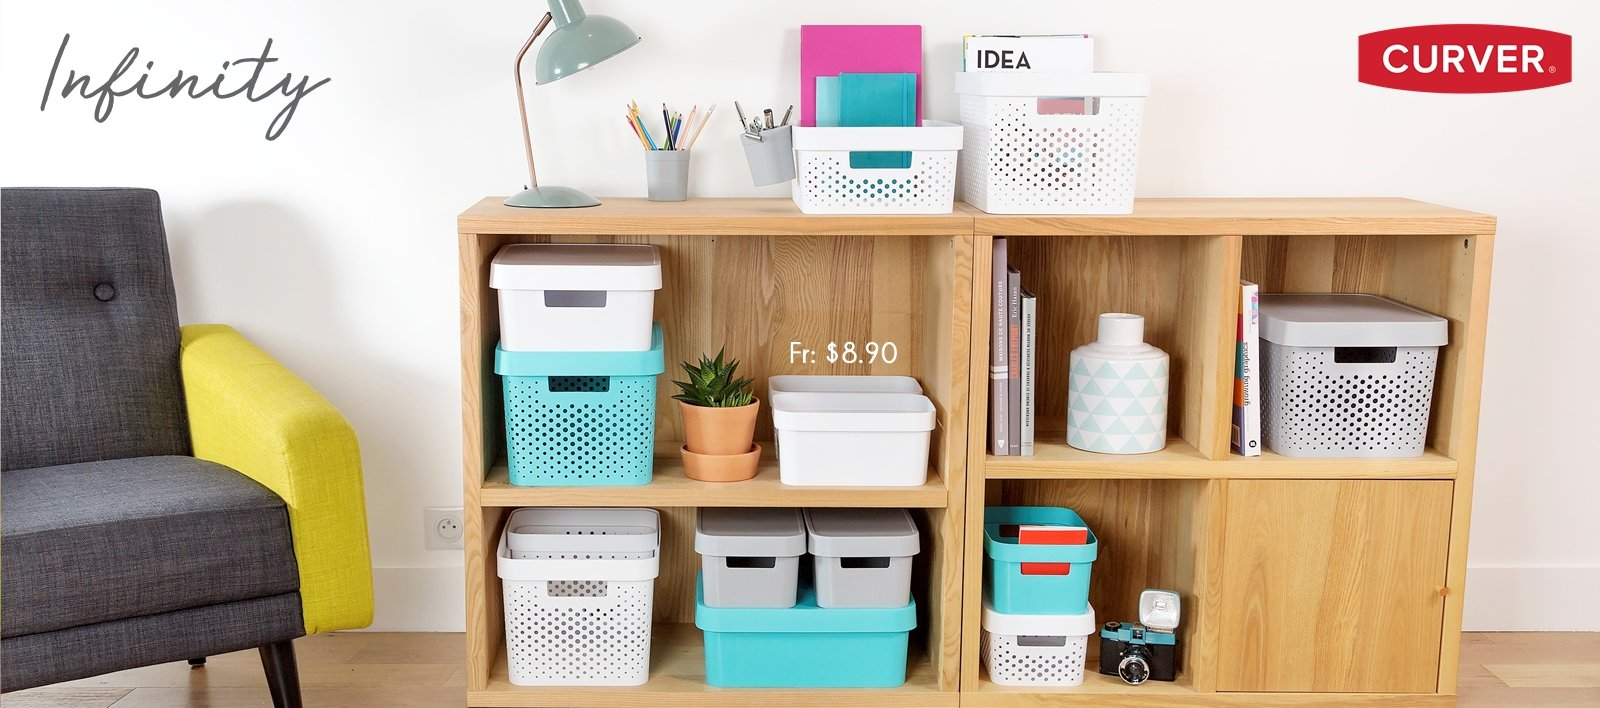 curver style infinity boxes plastic storage home organisation cheap sale rattan design the home shoppe sale sg